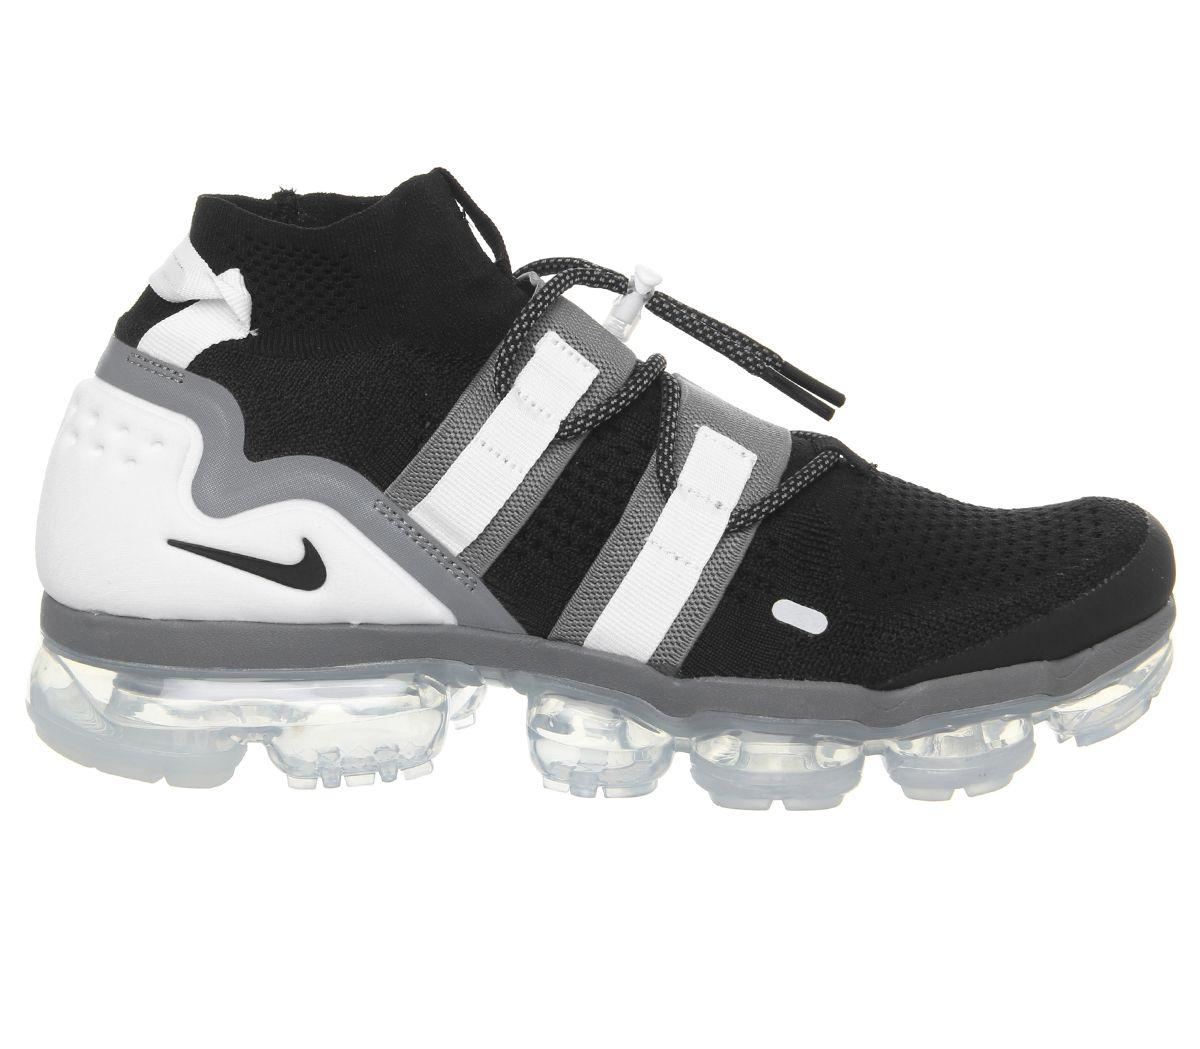 b1e1fbcb6927 Lyst - Nike Air Vapormax Flyknit Utility Trainers in Black for Men